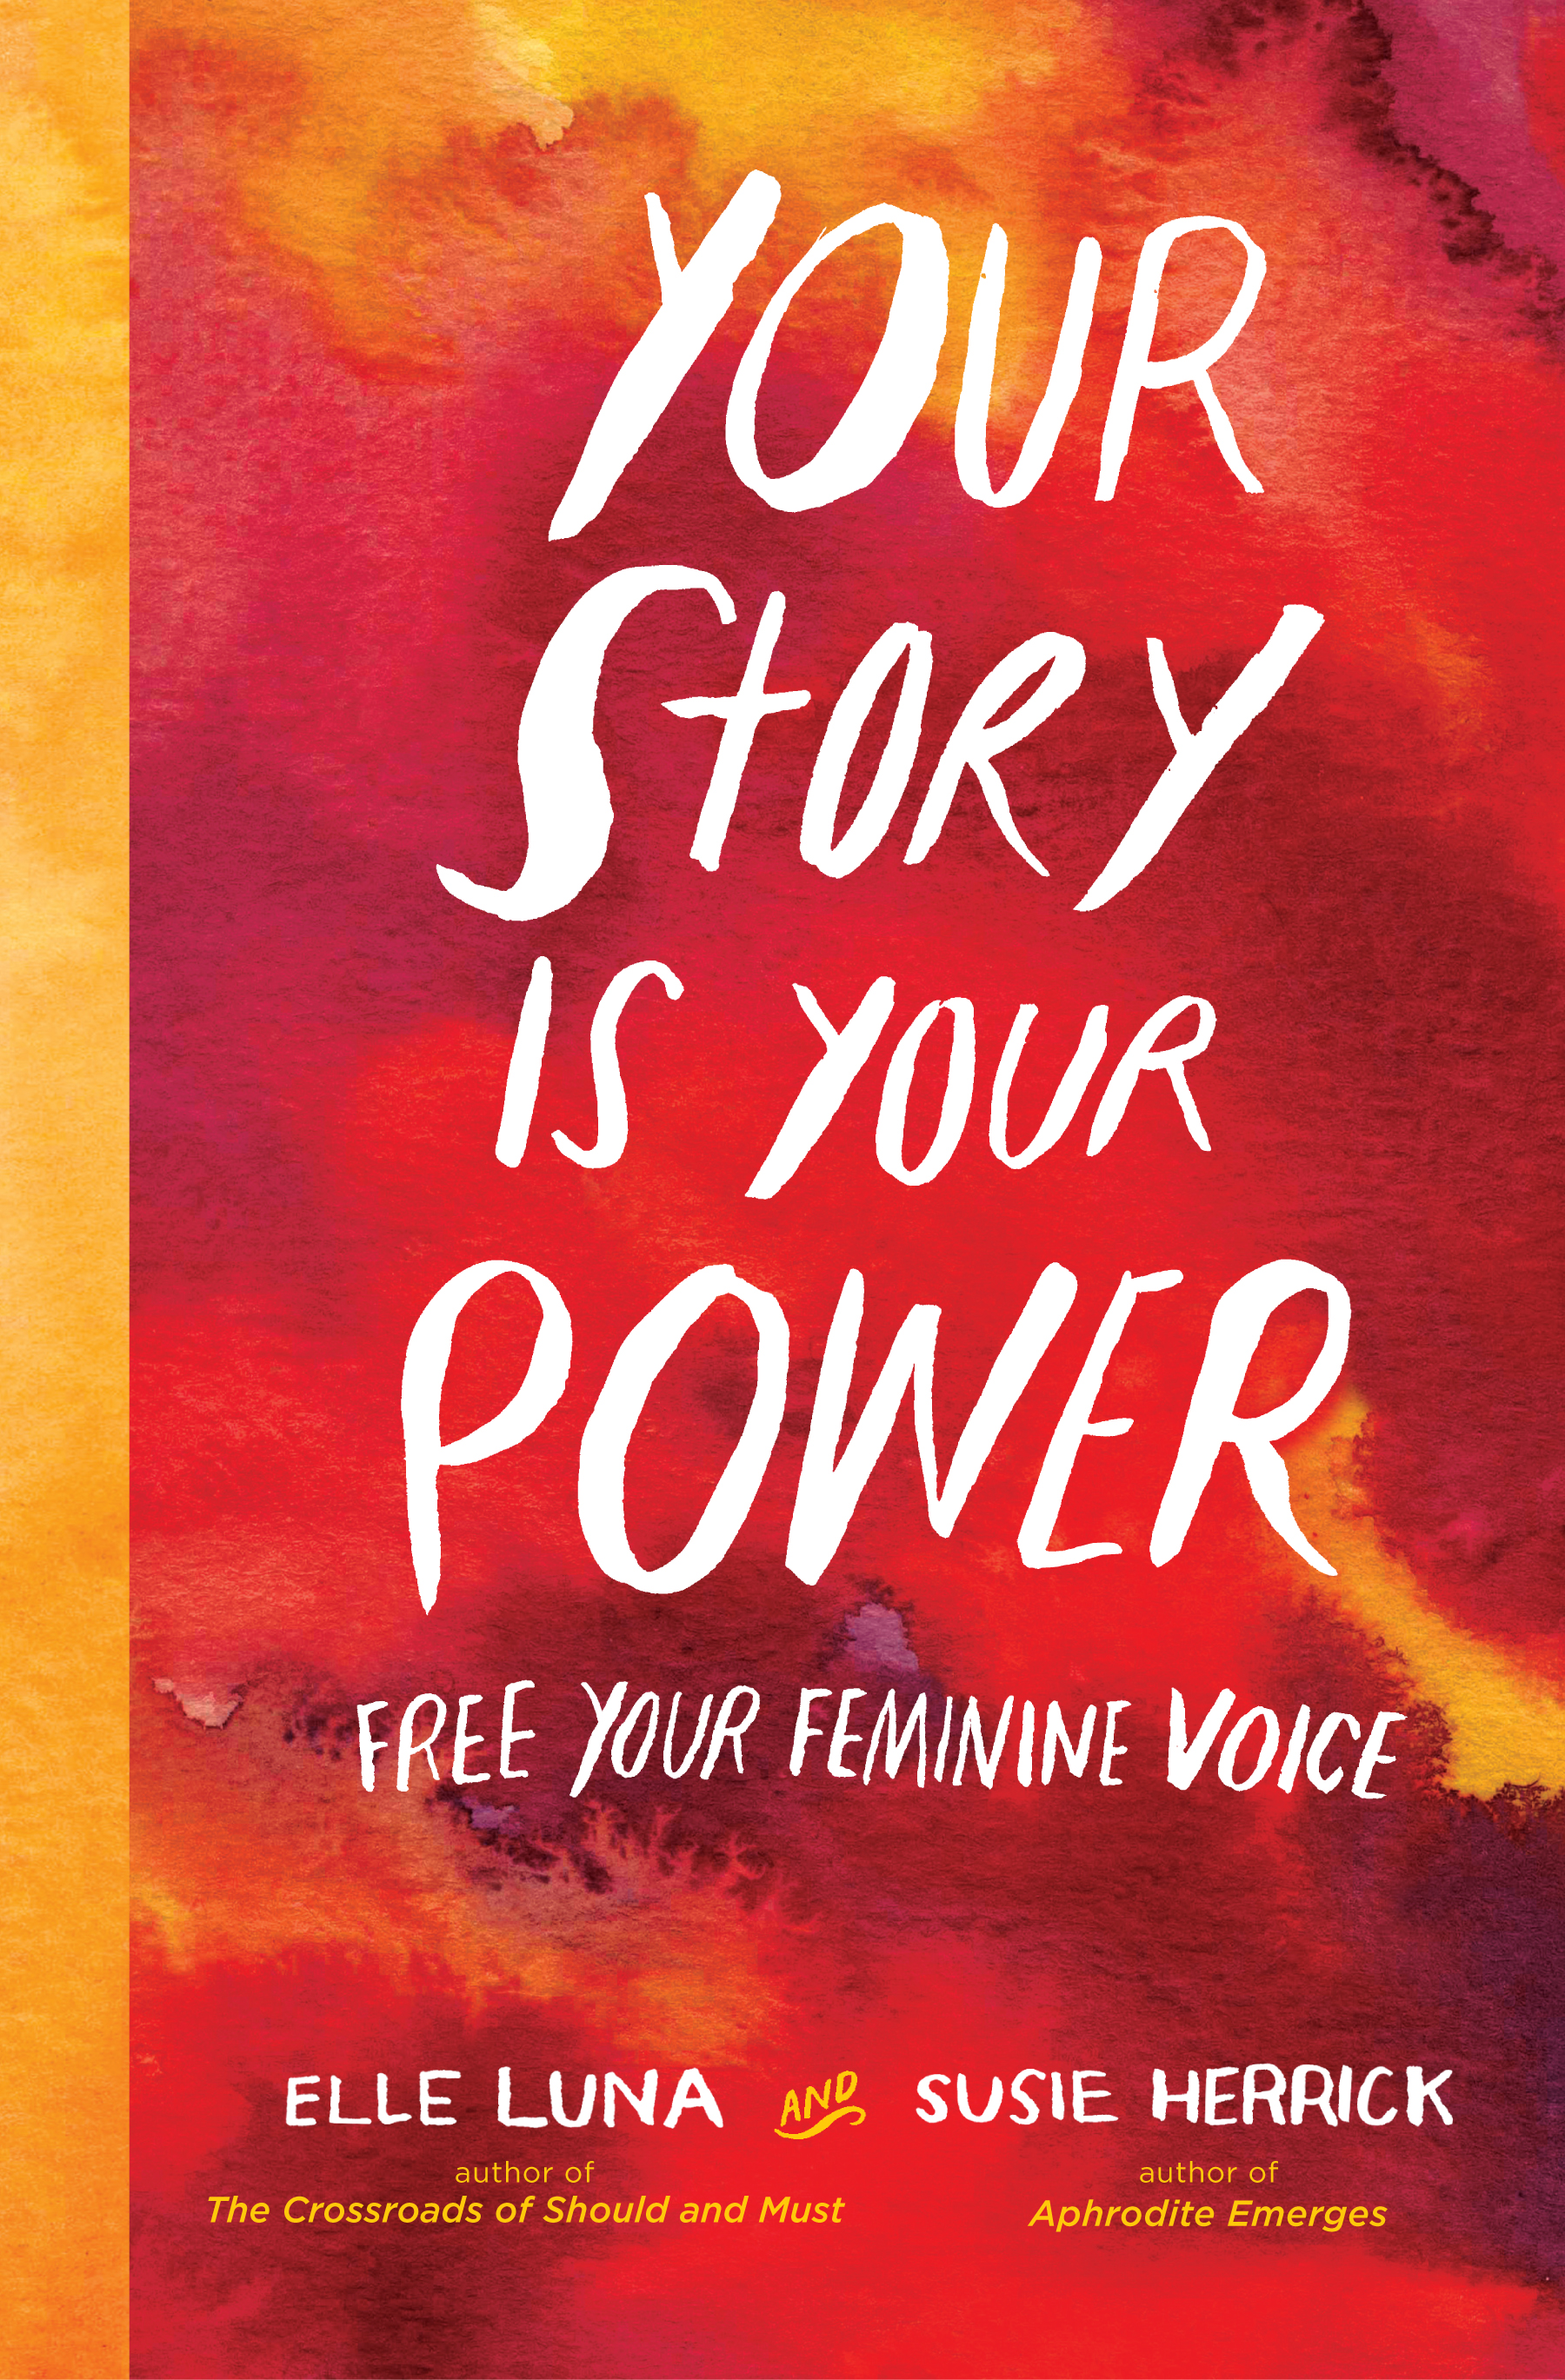 Your Story is Your Power - Susie Herrick and Elle Luna team up to create a book that leads women to identify and understand the forces that shaped them, and then to determine how their own future, and that of the female community, will unfold.